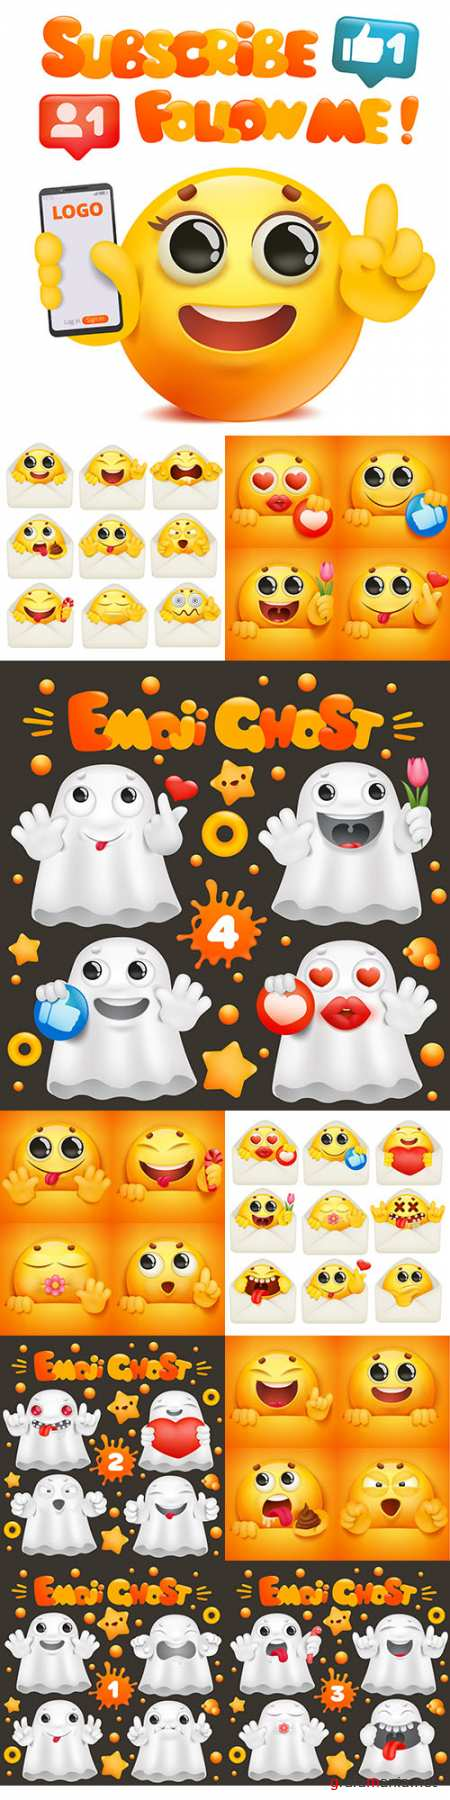 Yellow smiley and cute ghost in various emotions and situations